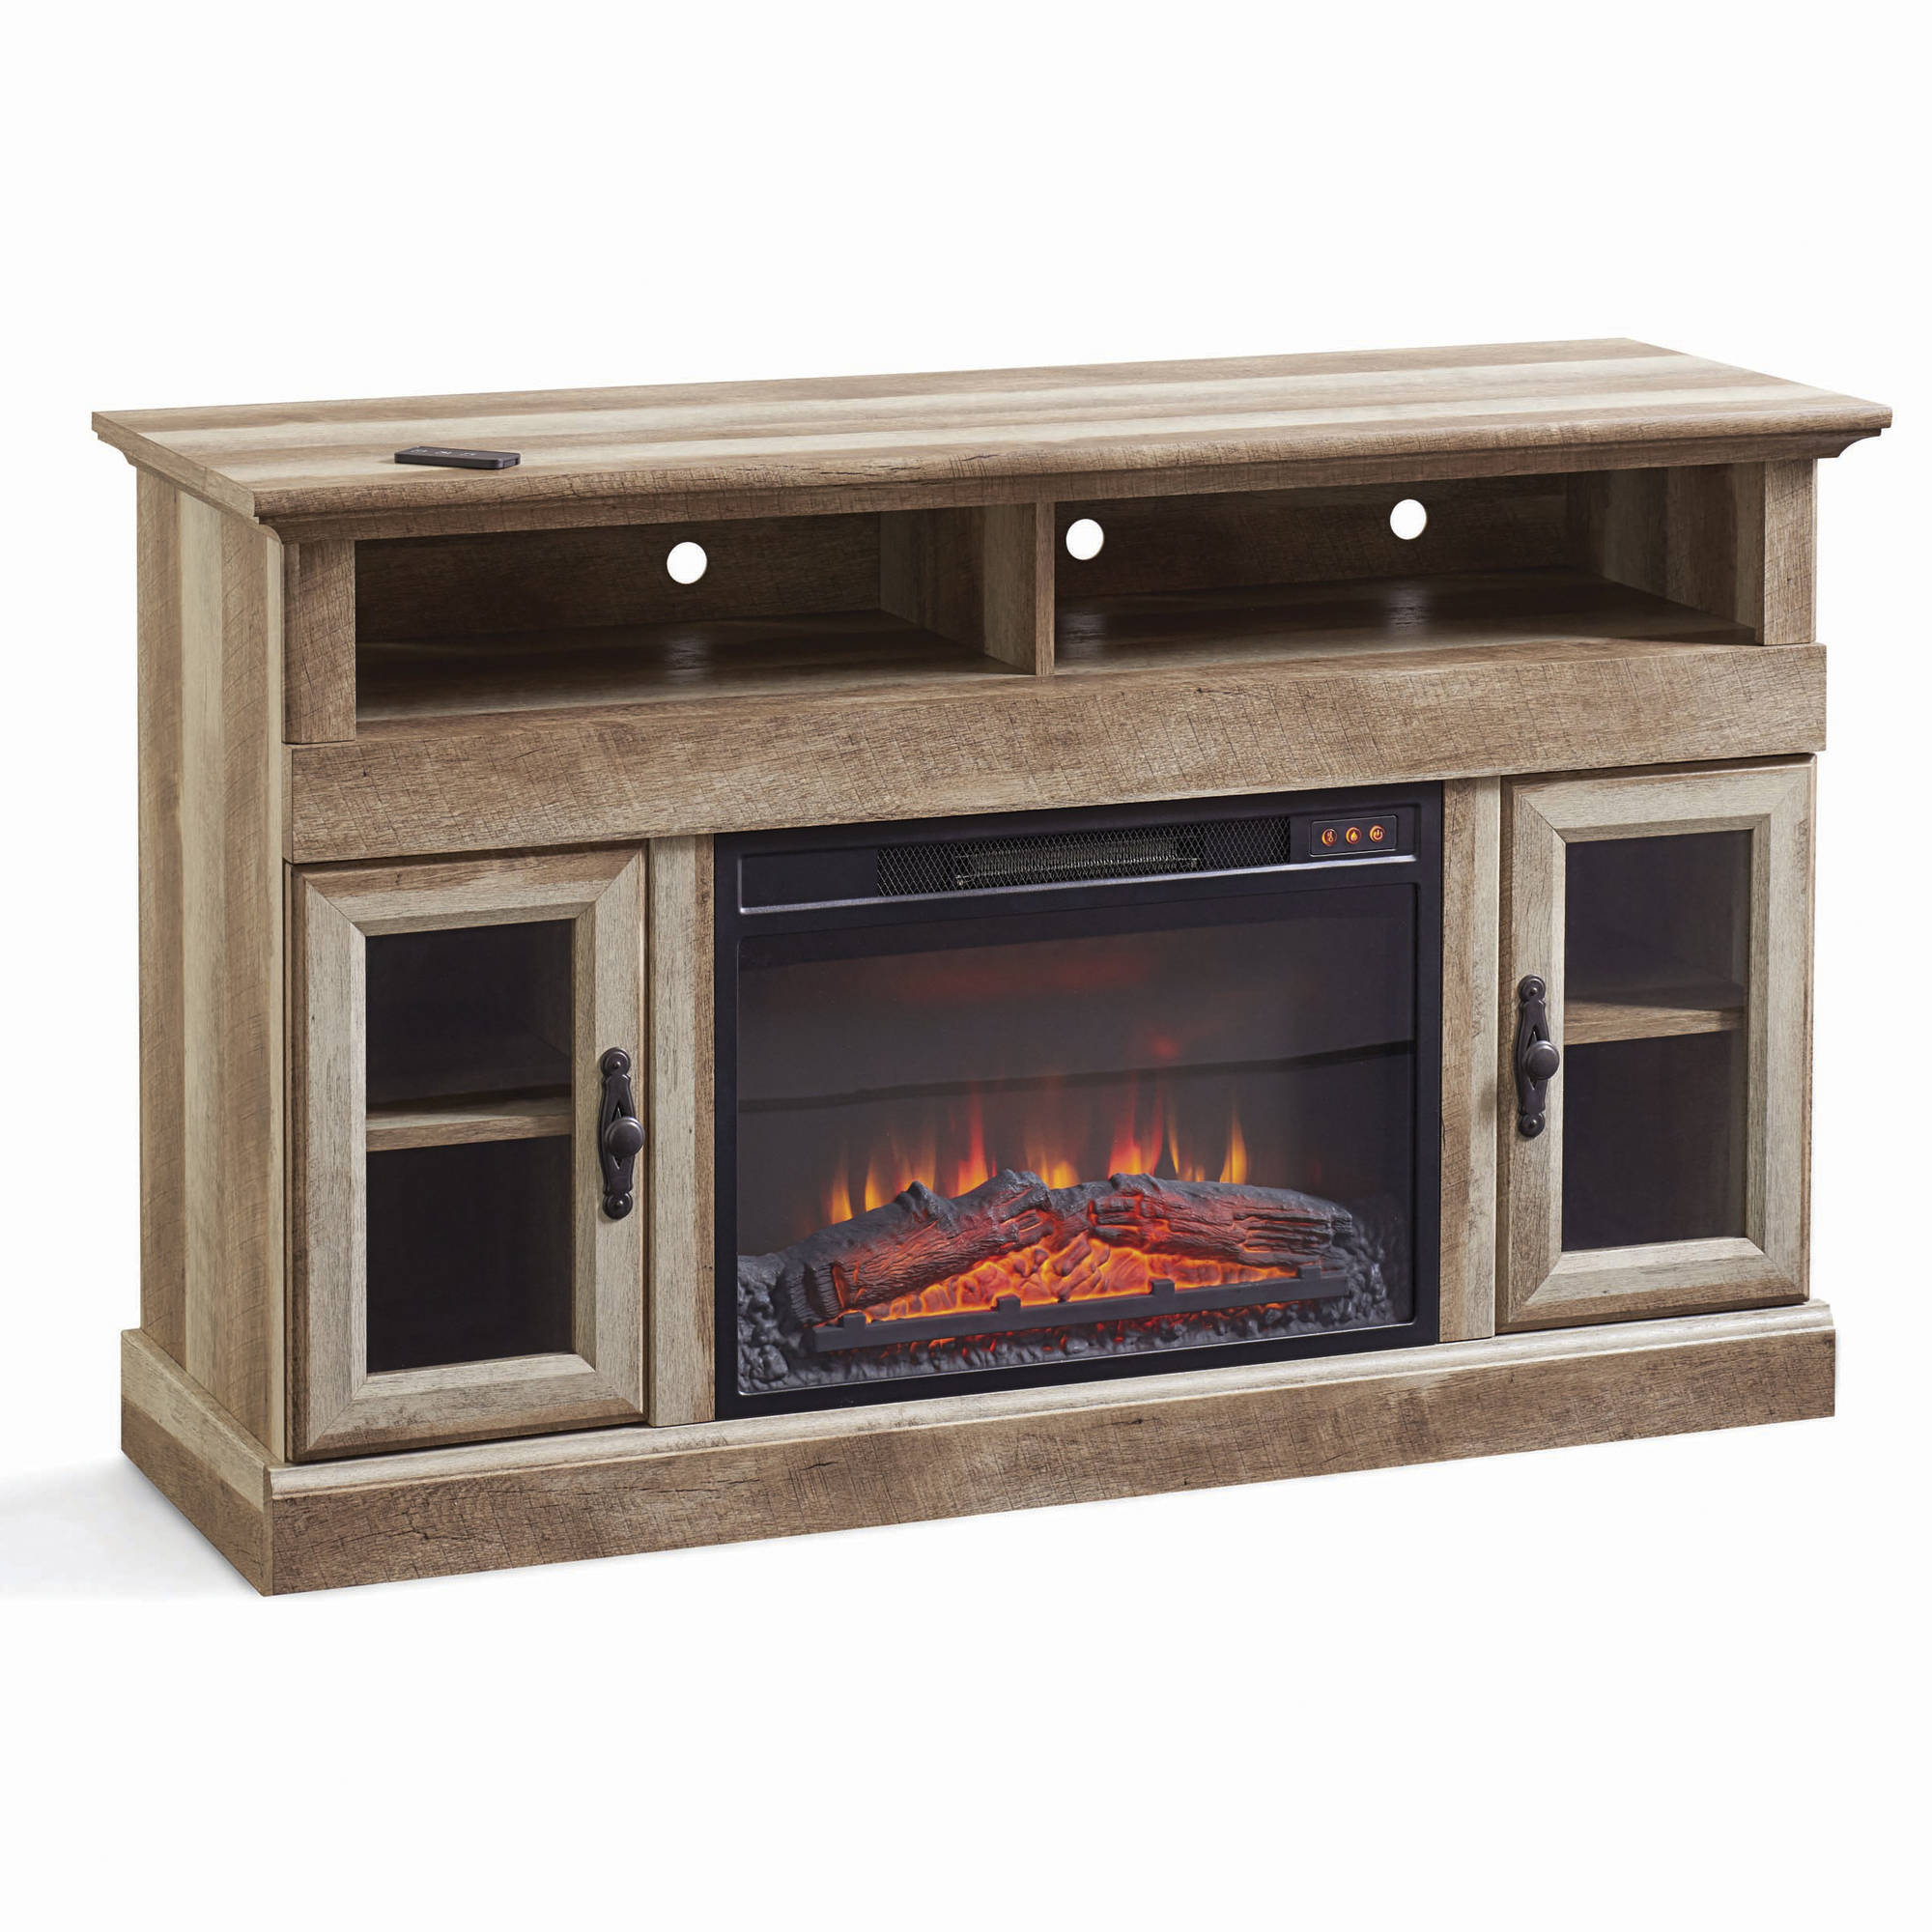 Better Homes & Gardens Crossmill Fireplace Media Console Weathered Finish by Sauder Woodworking Co